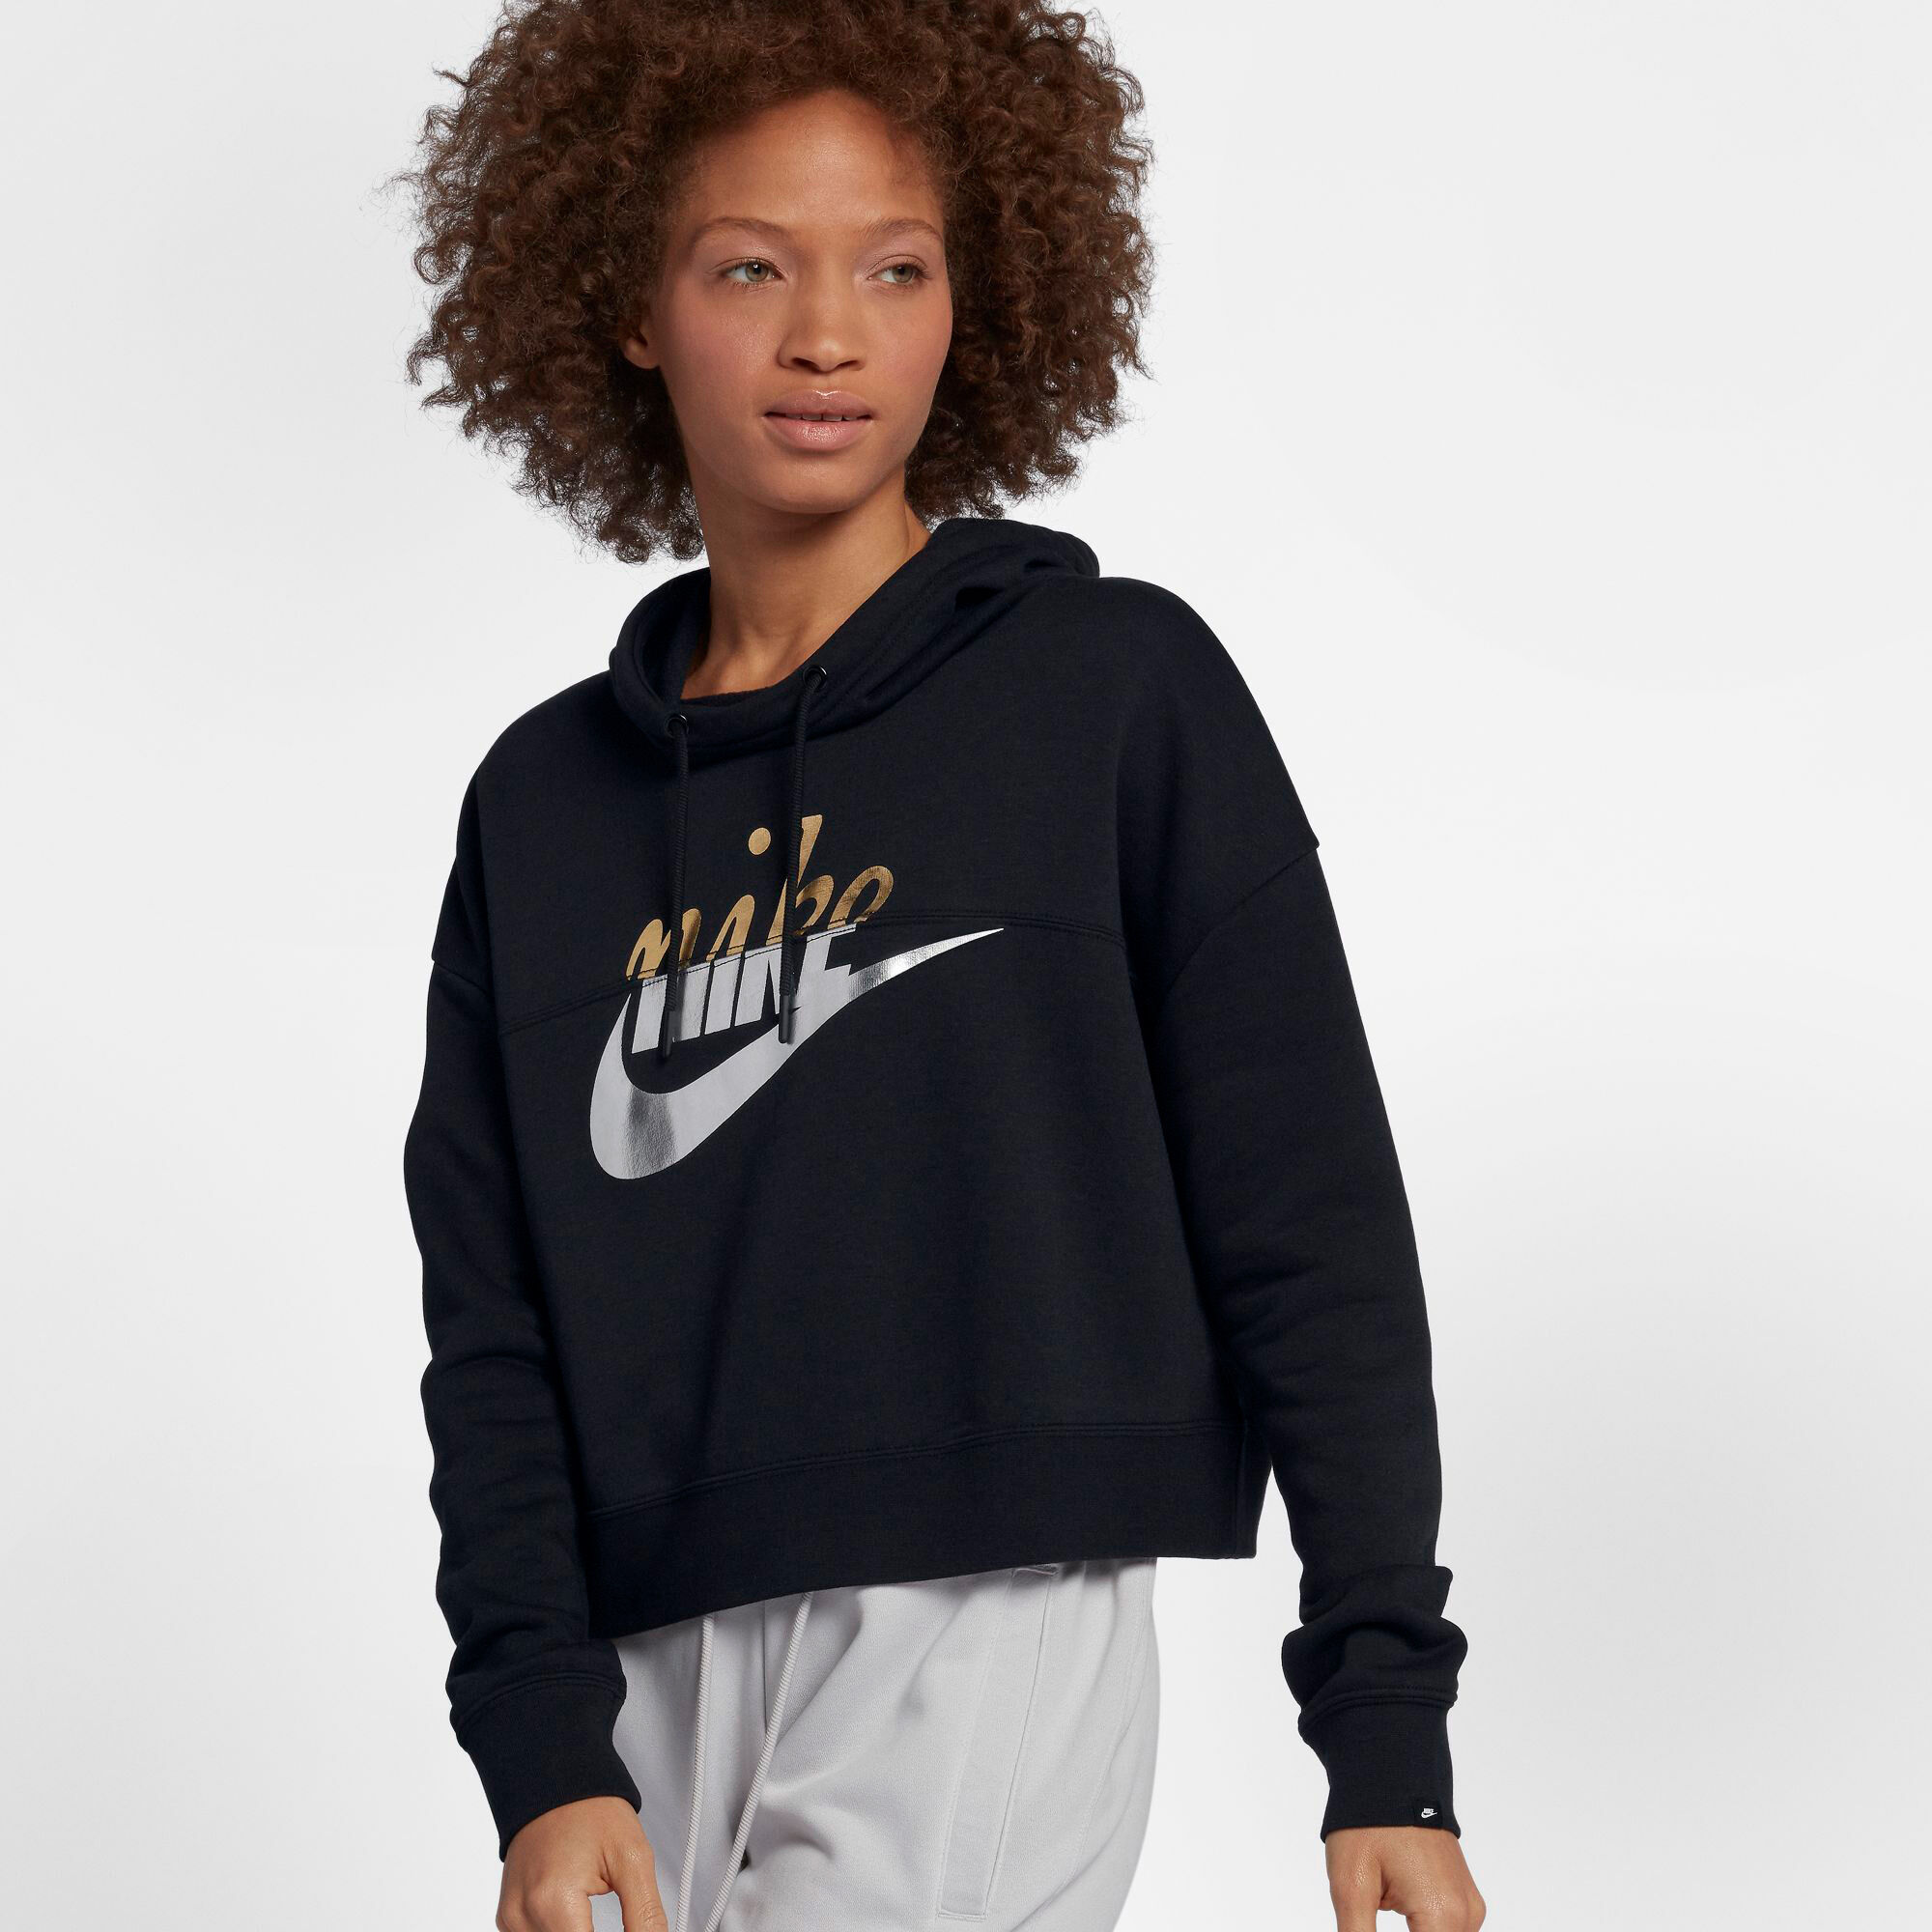 Intersport Sudaderas Fitness Nike Mujer Ynvoqvp A rWQCEBxode